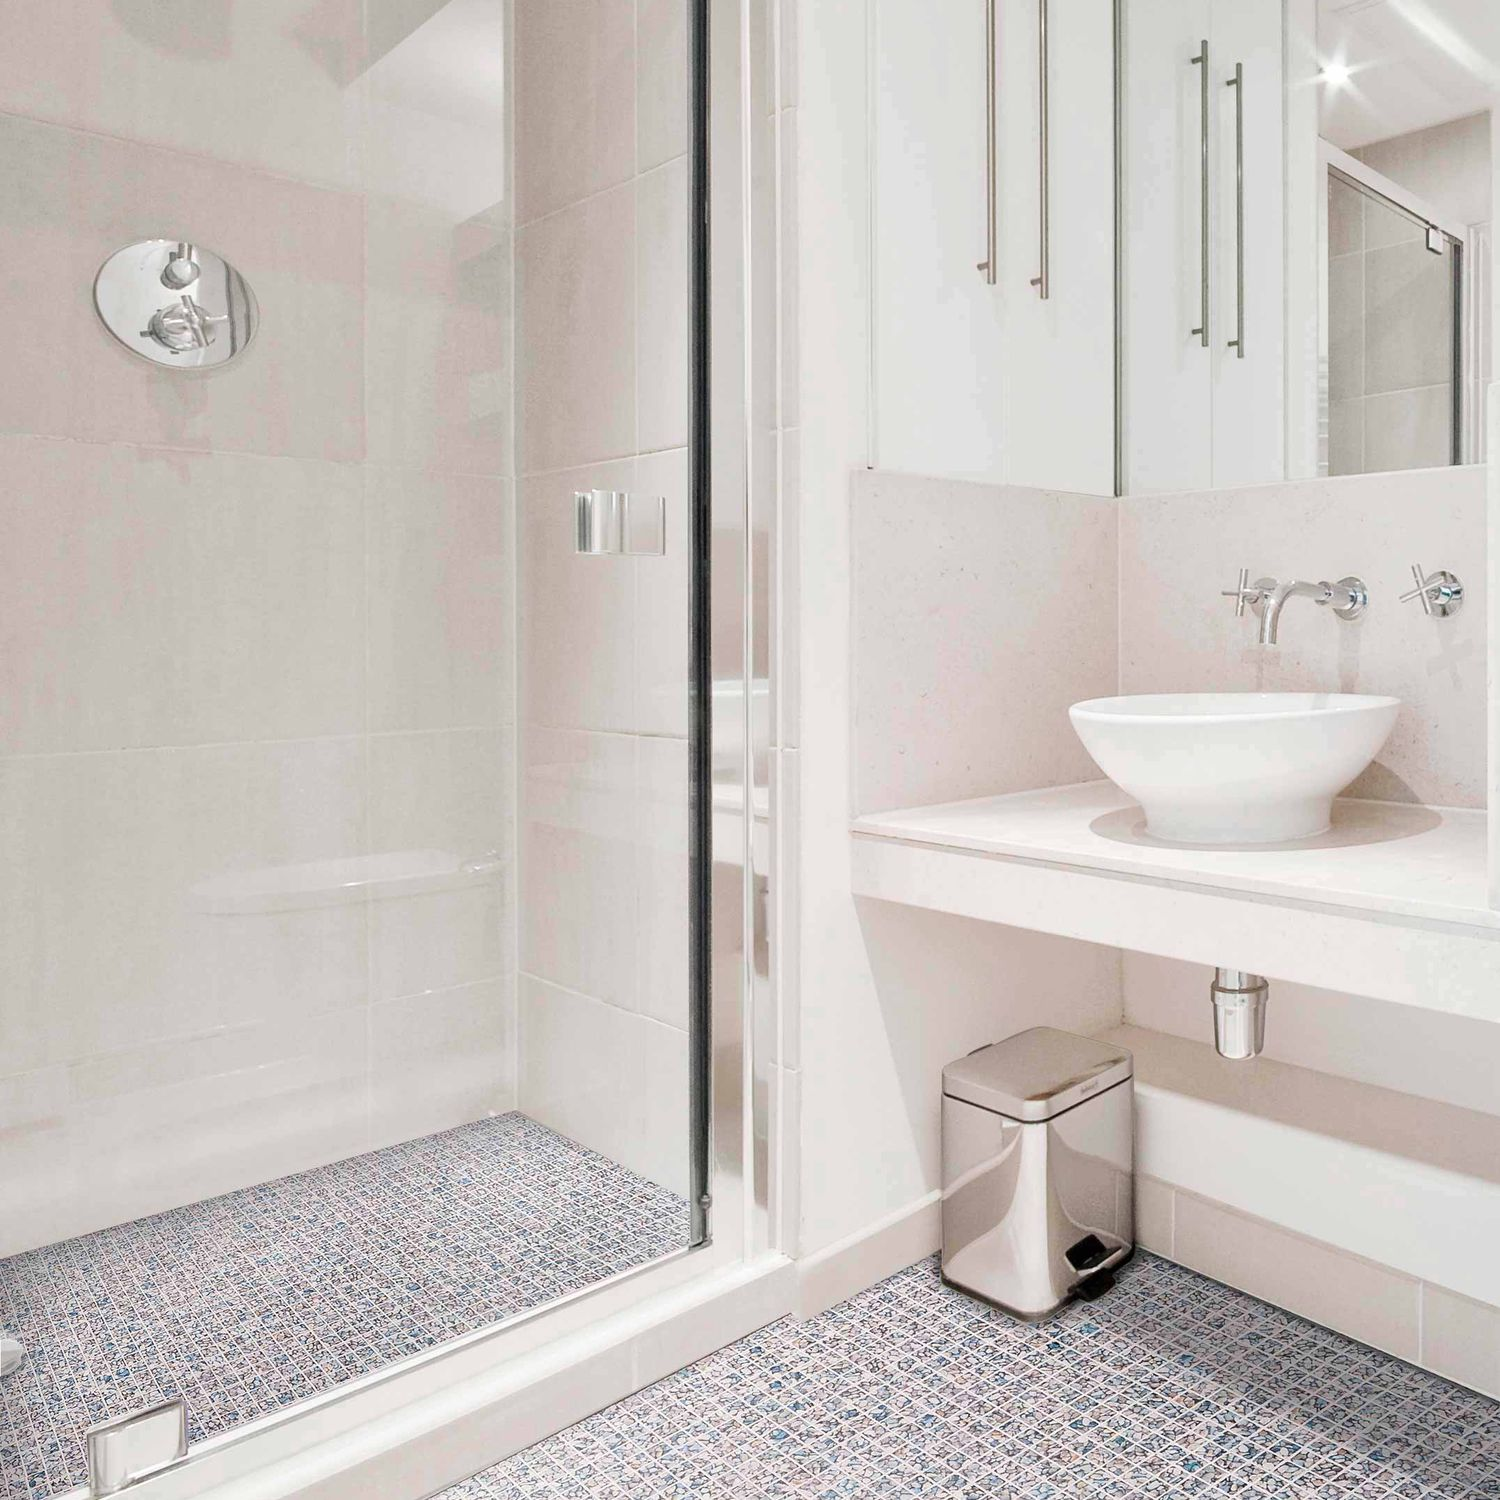 Bathroom mosaic tile / floor / glass / matte - PERISSA - Mosavit